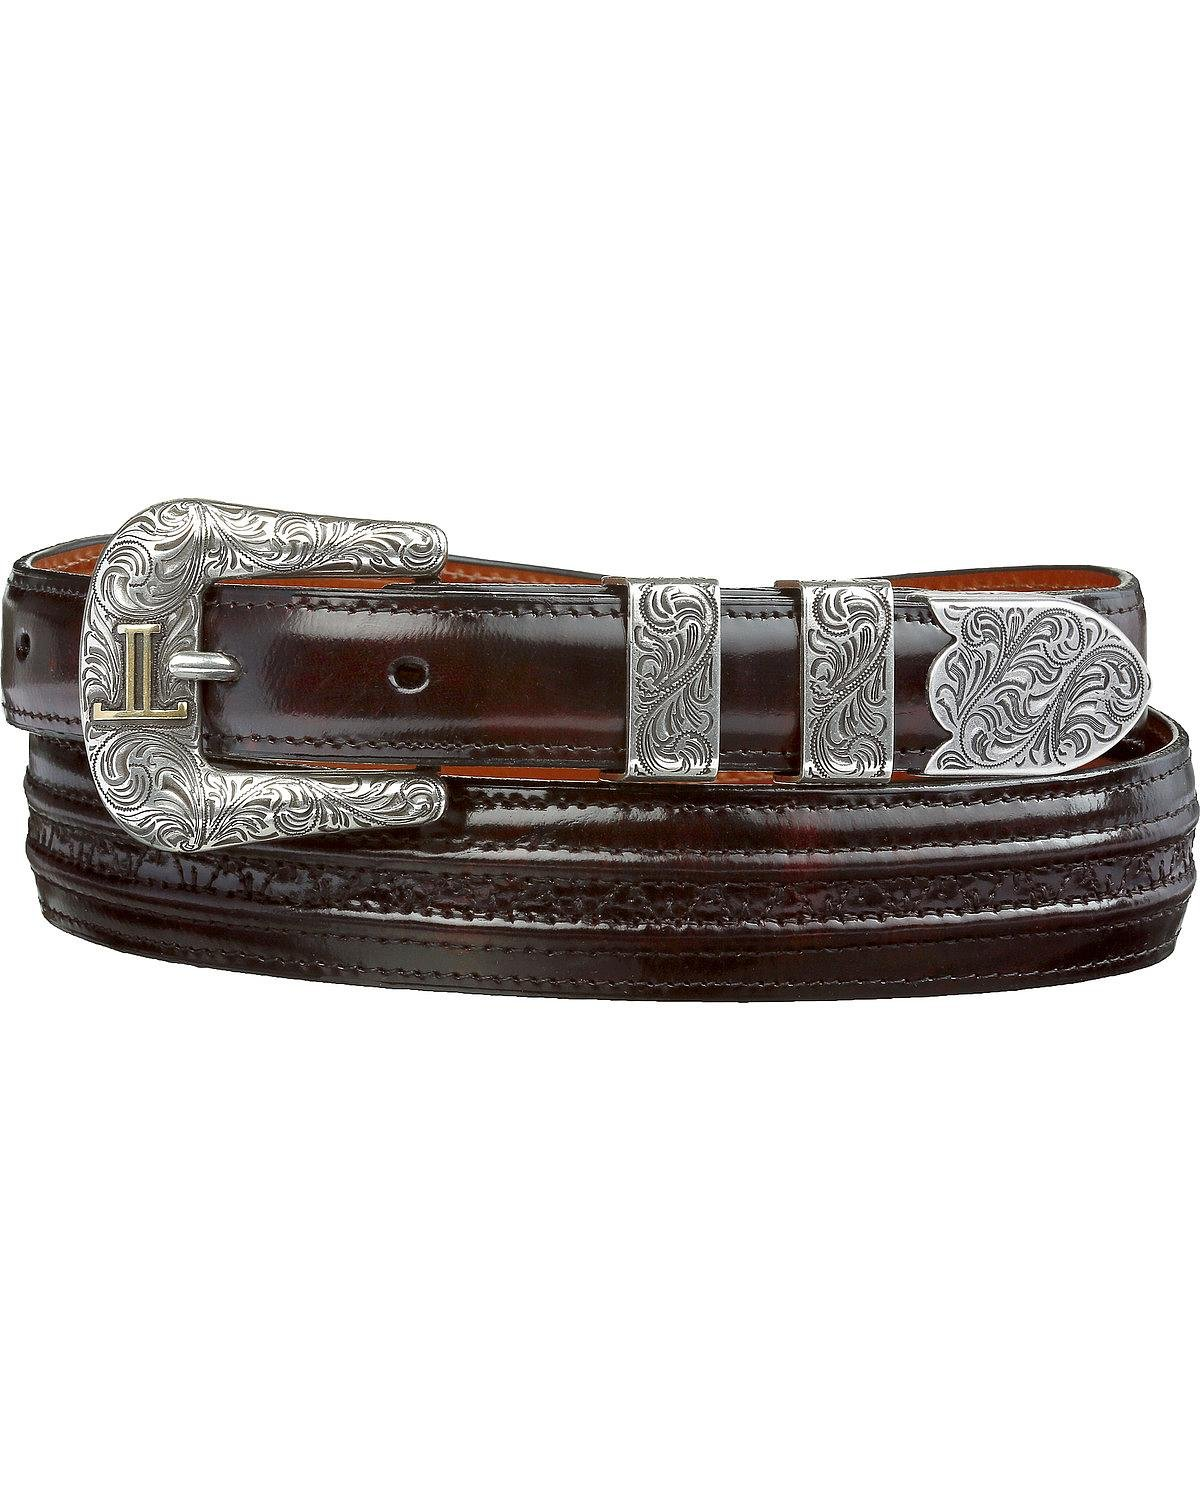 Lucchese Men's Cherry Goat With Hobby Stitch Leather Belt Black Cherry 38